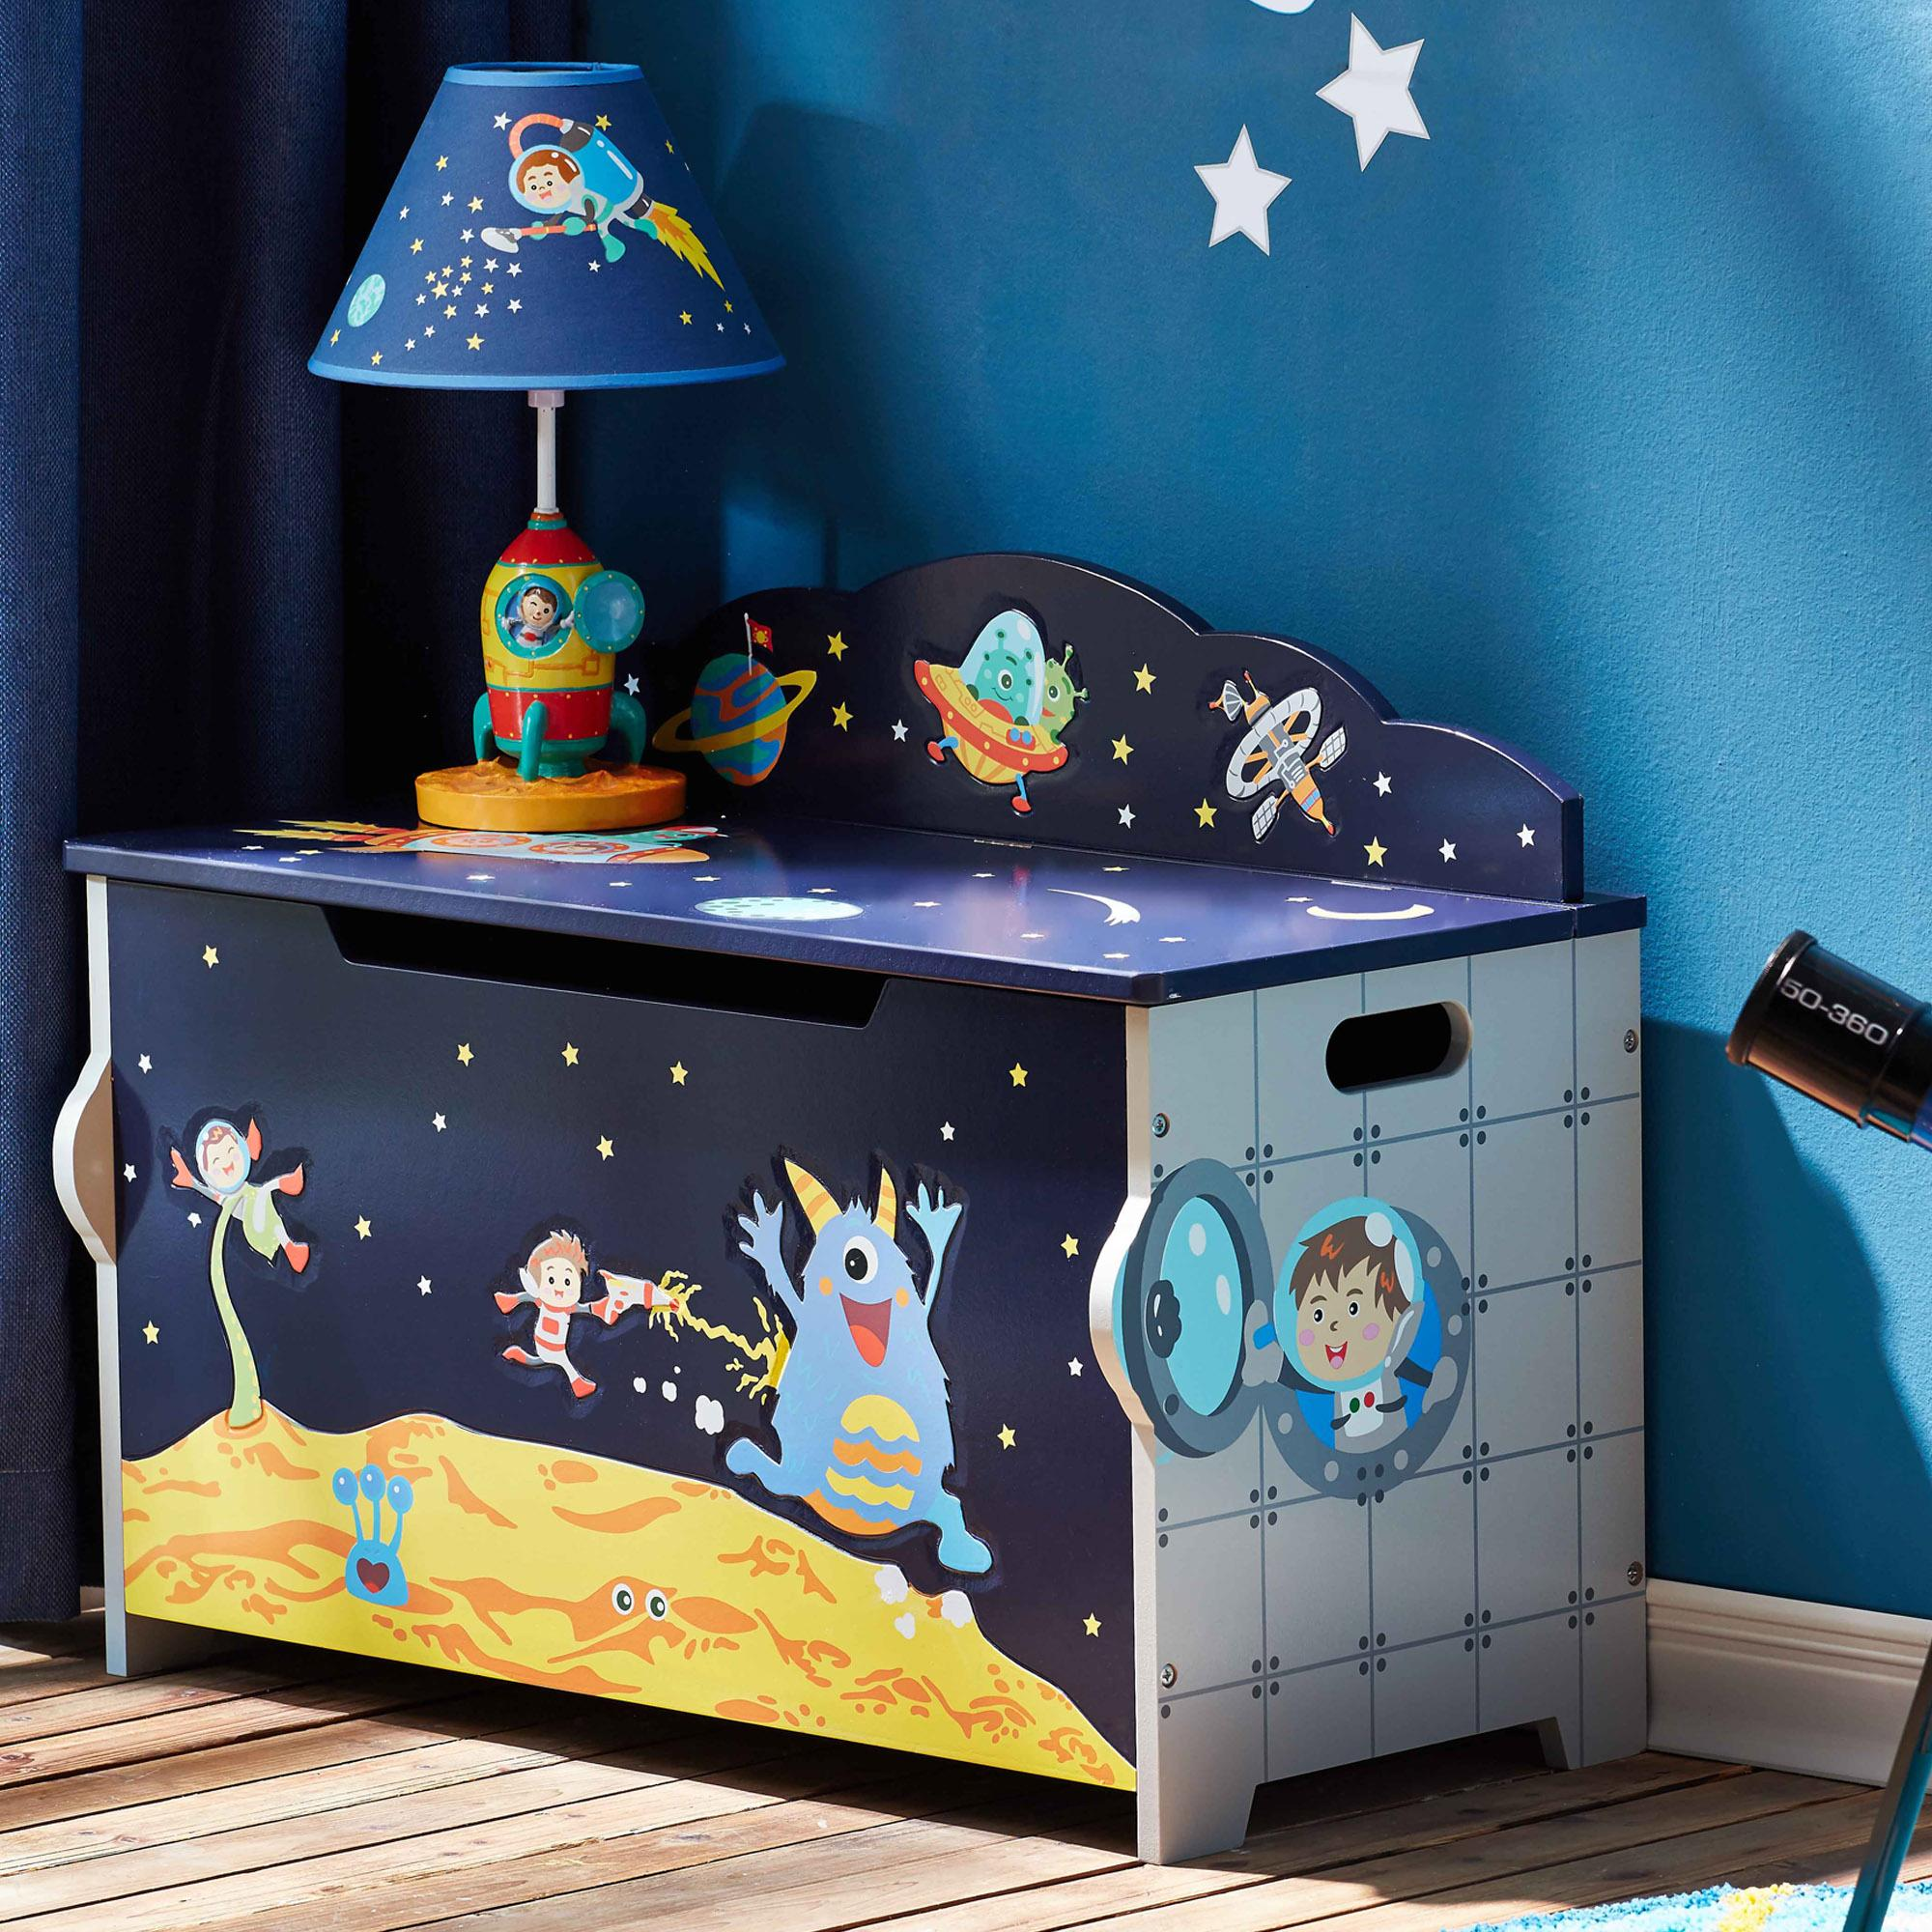 Bookshelf Storage Chest Kids Toy Box Plastic Play Room: Outer Space Themed Kids Wooden Toy Chest